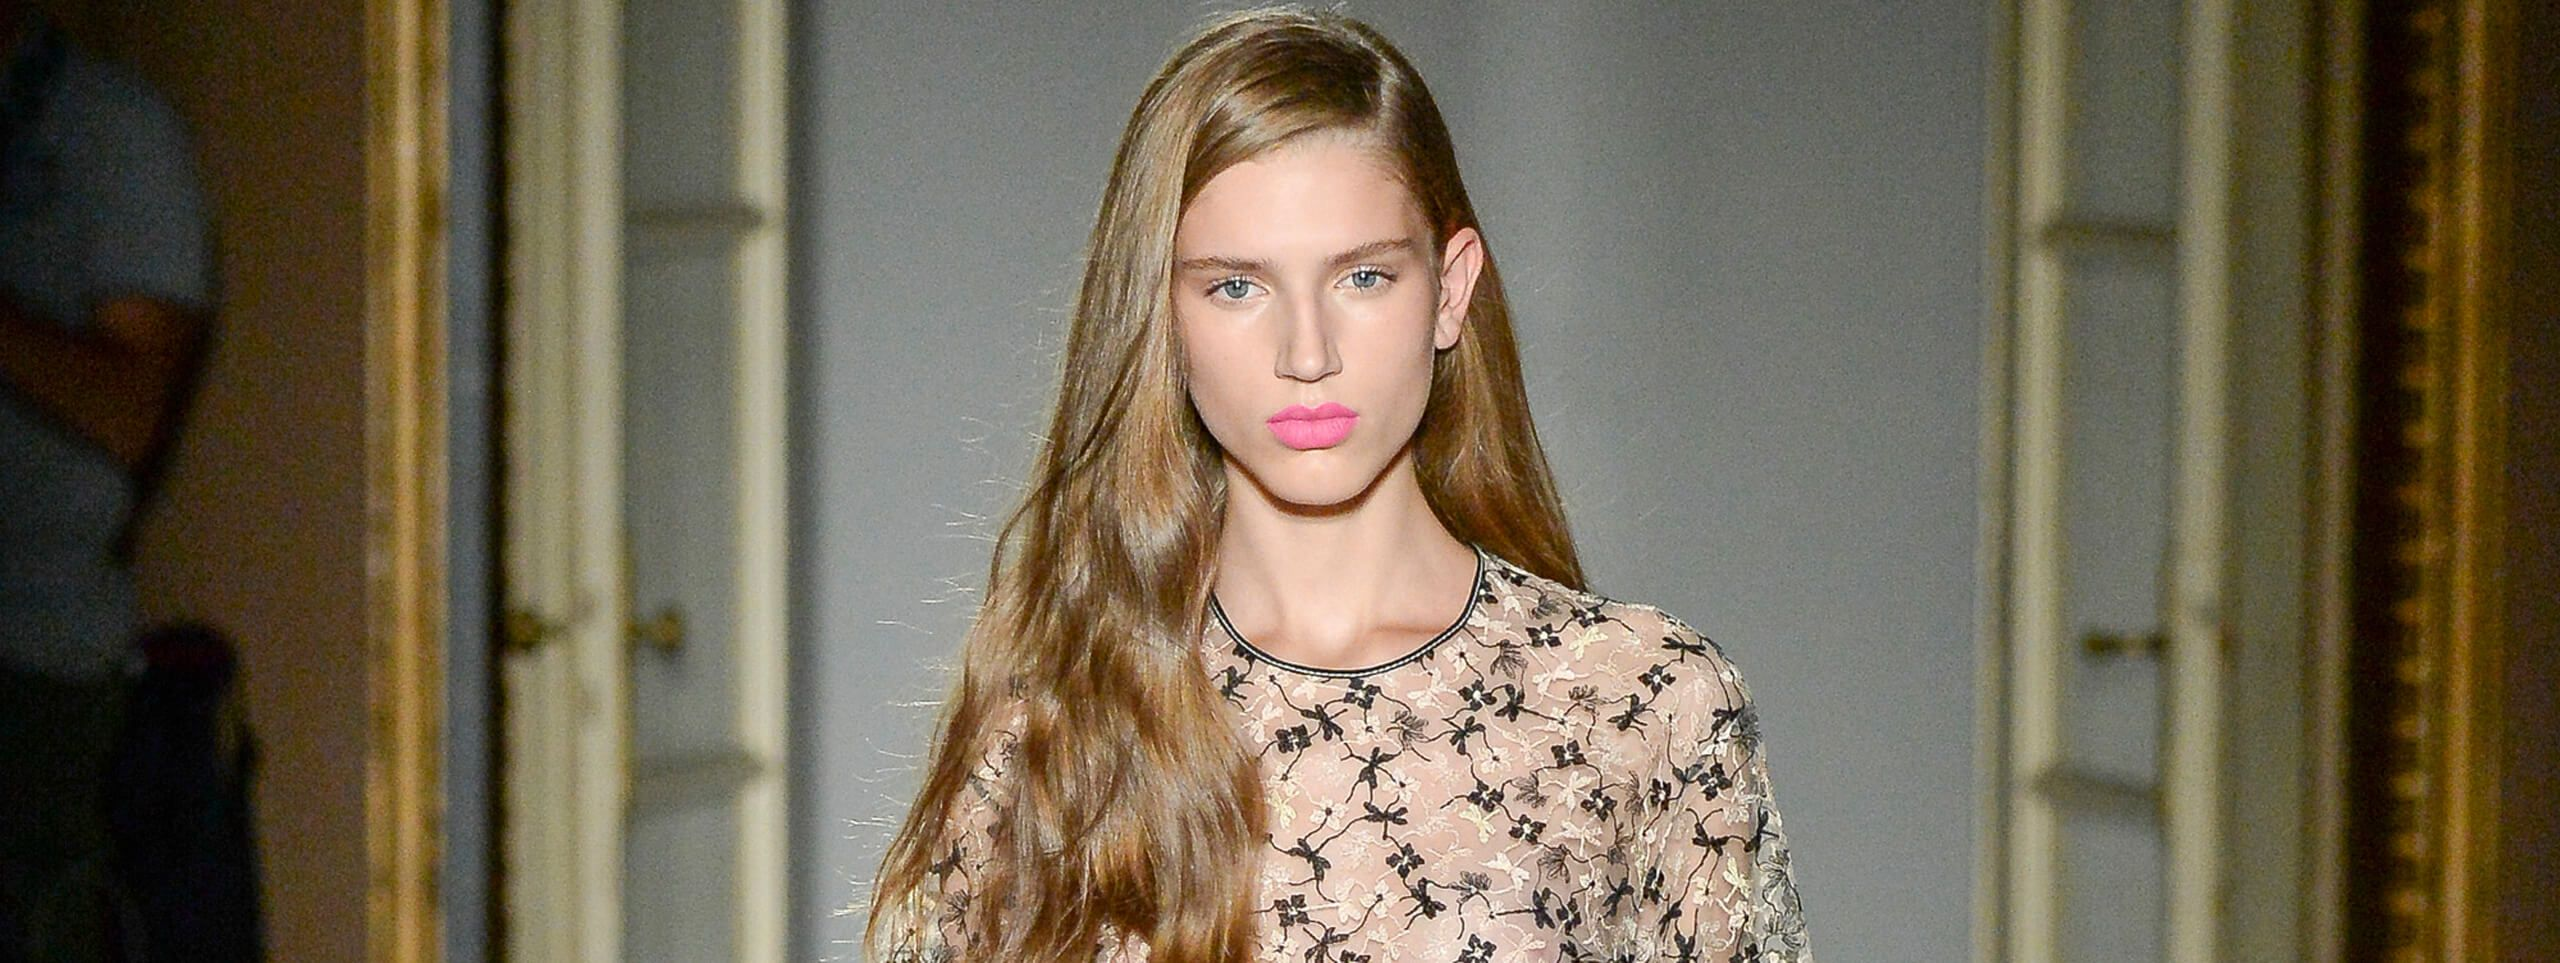 Model wears long brown hair in sideparting hairstyle